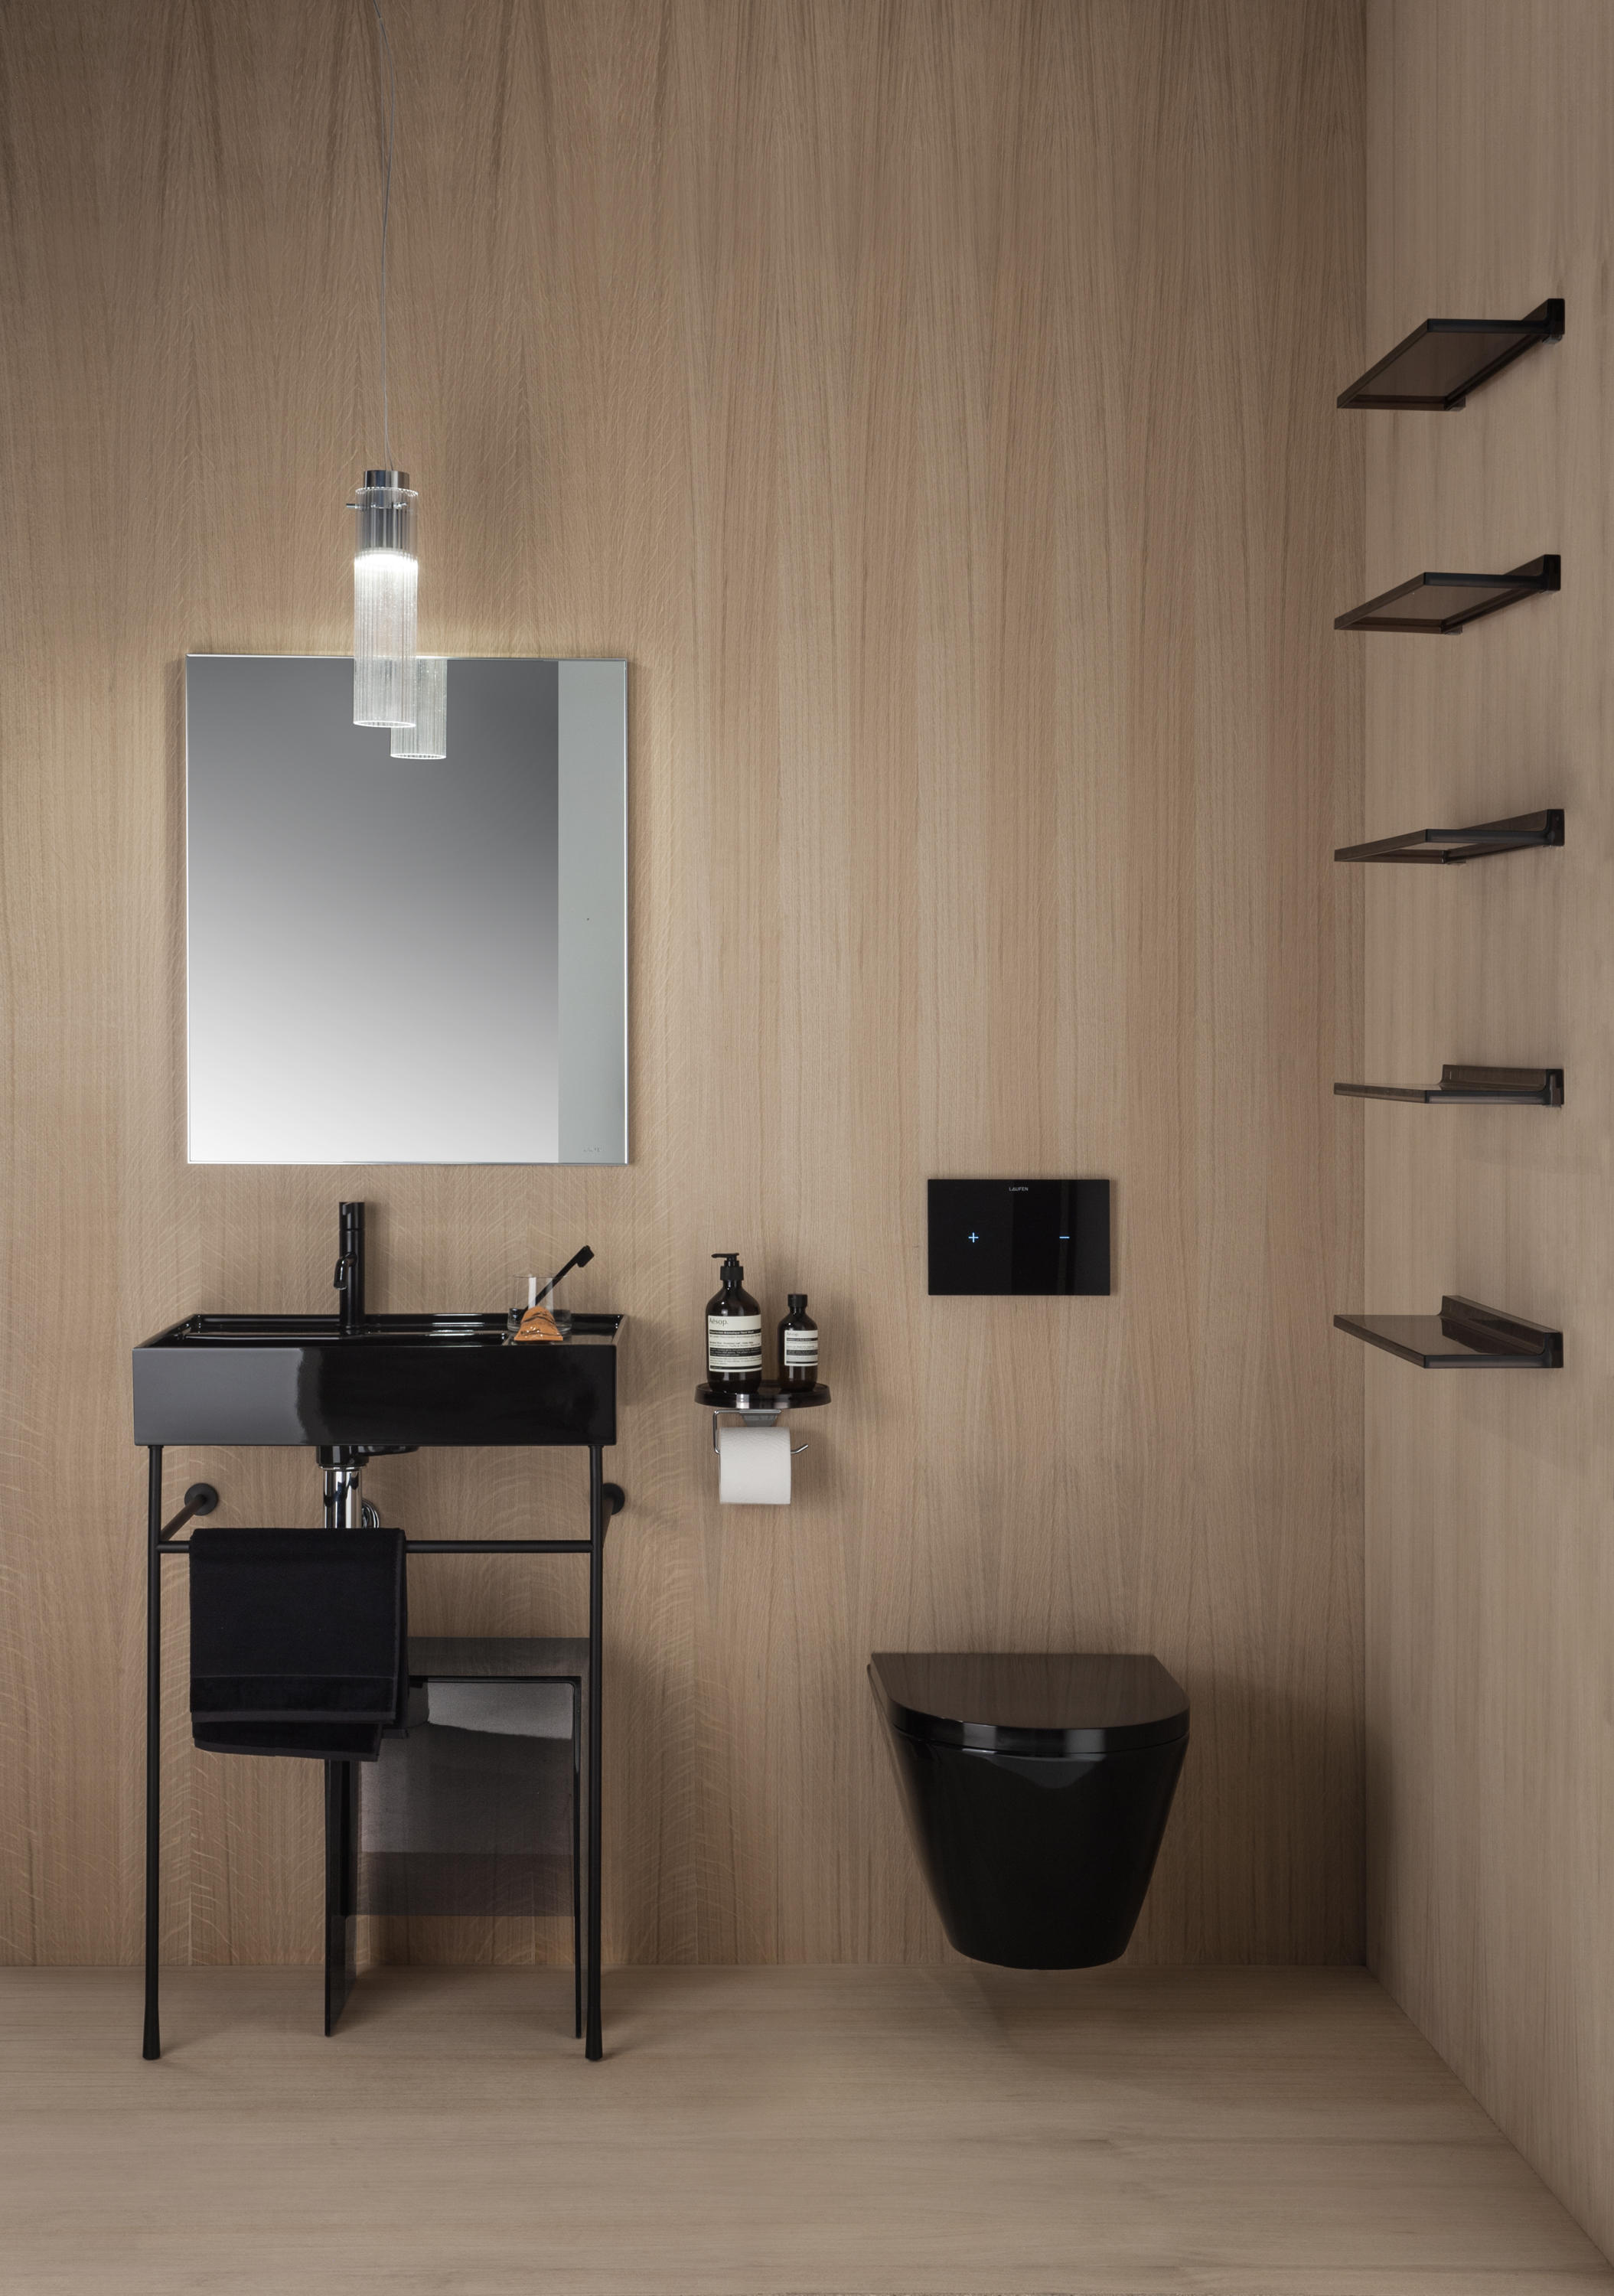 kartell by laufen waschtischunterbau. Black Bedroom Furniture Sets. Home Design Ideas